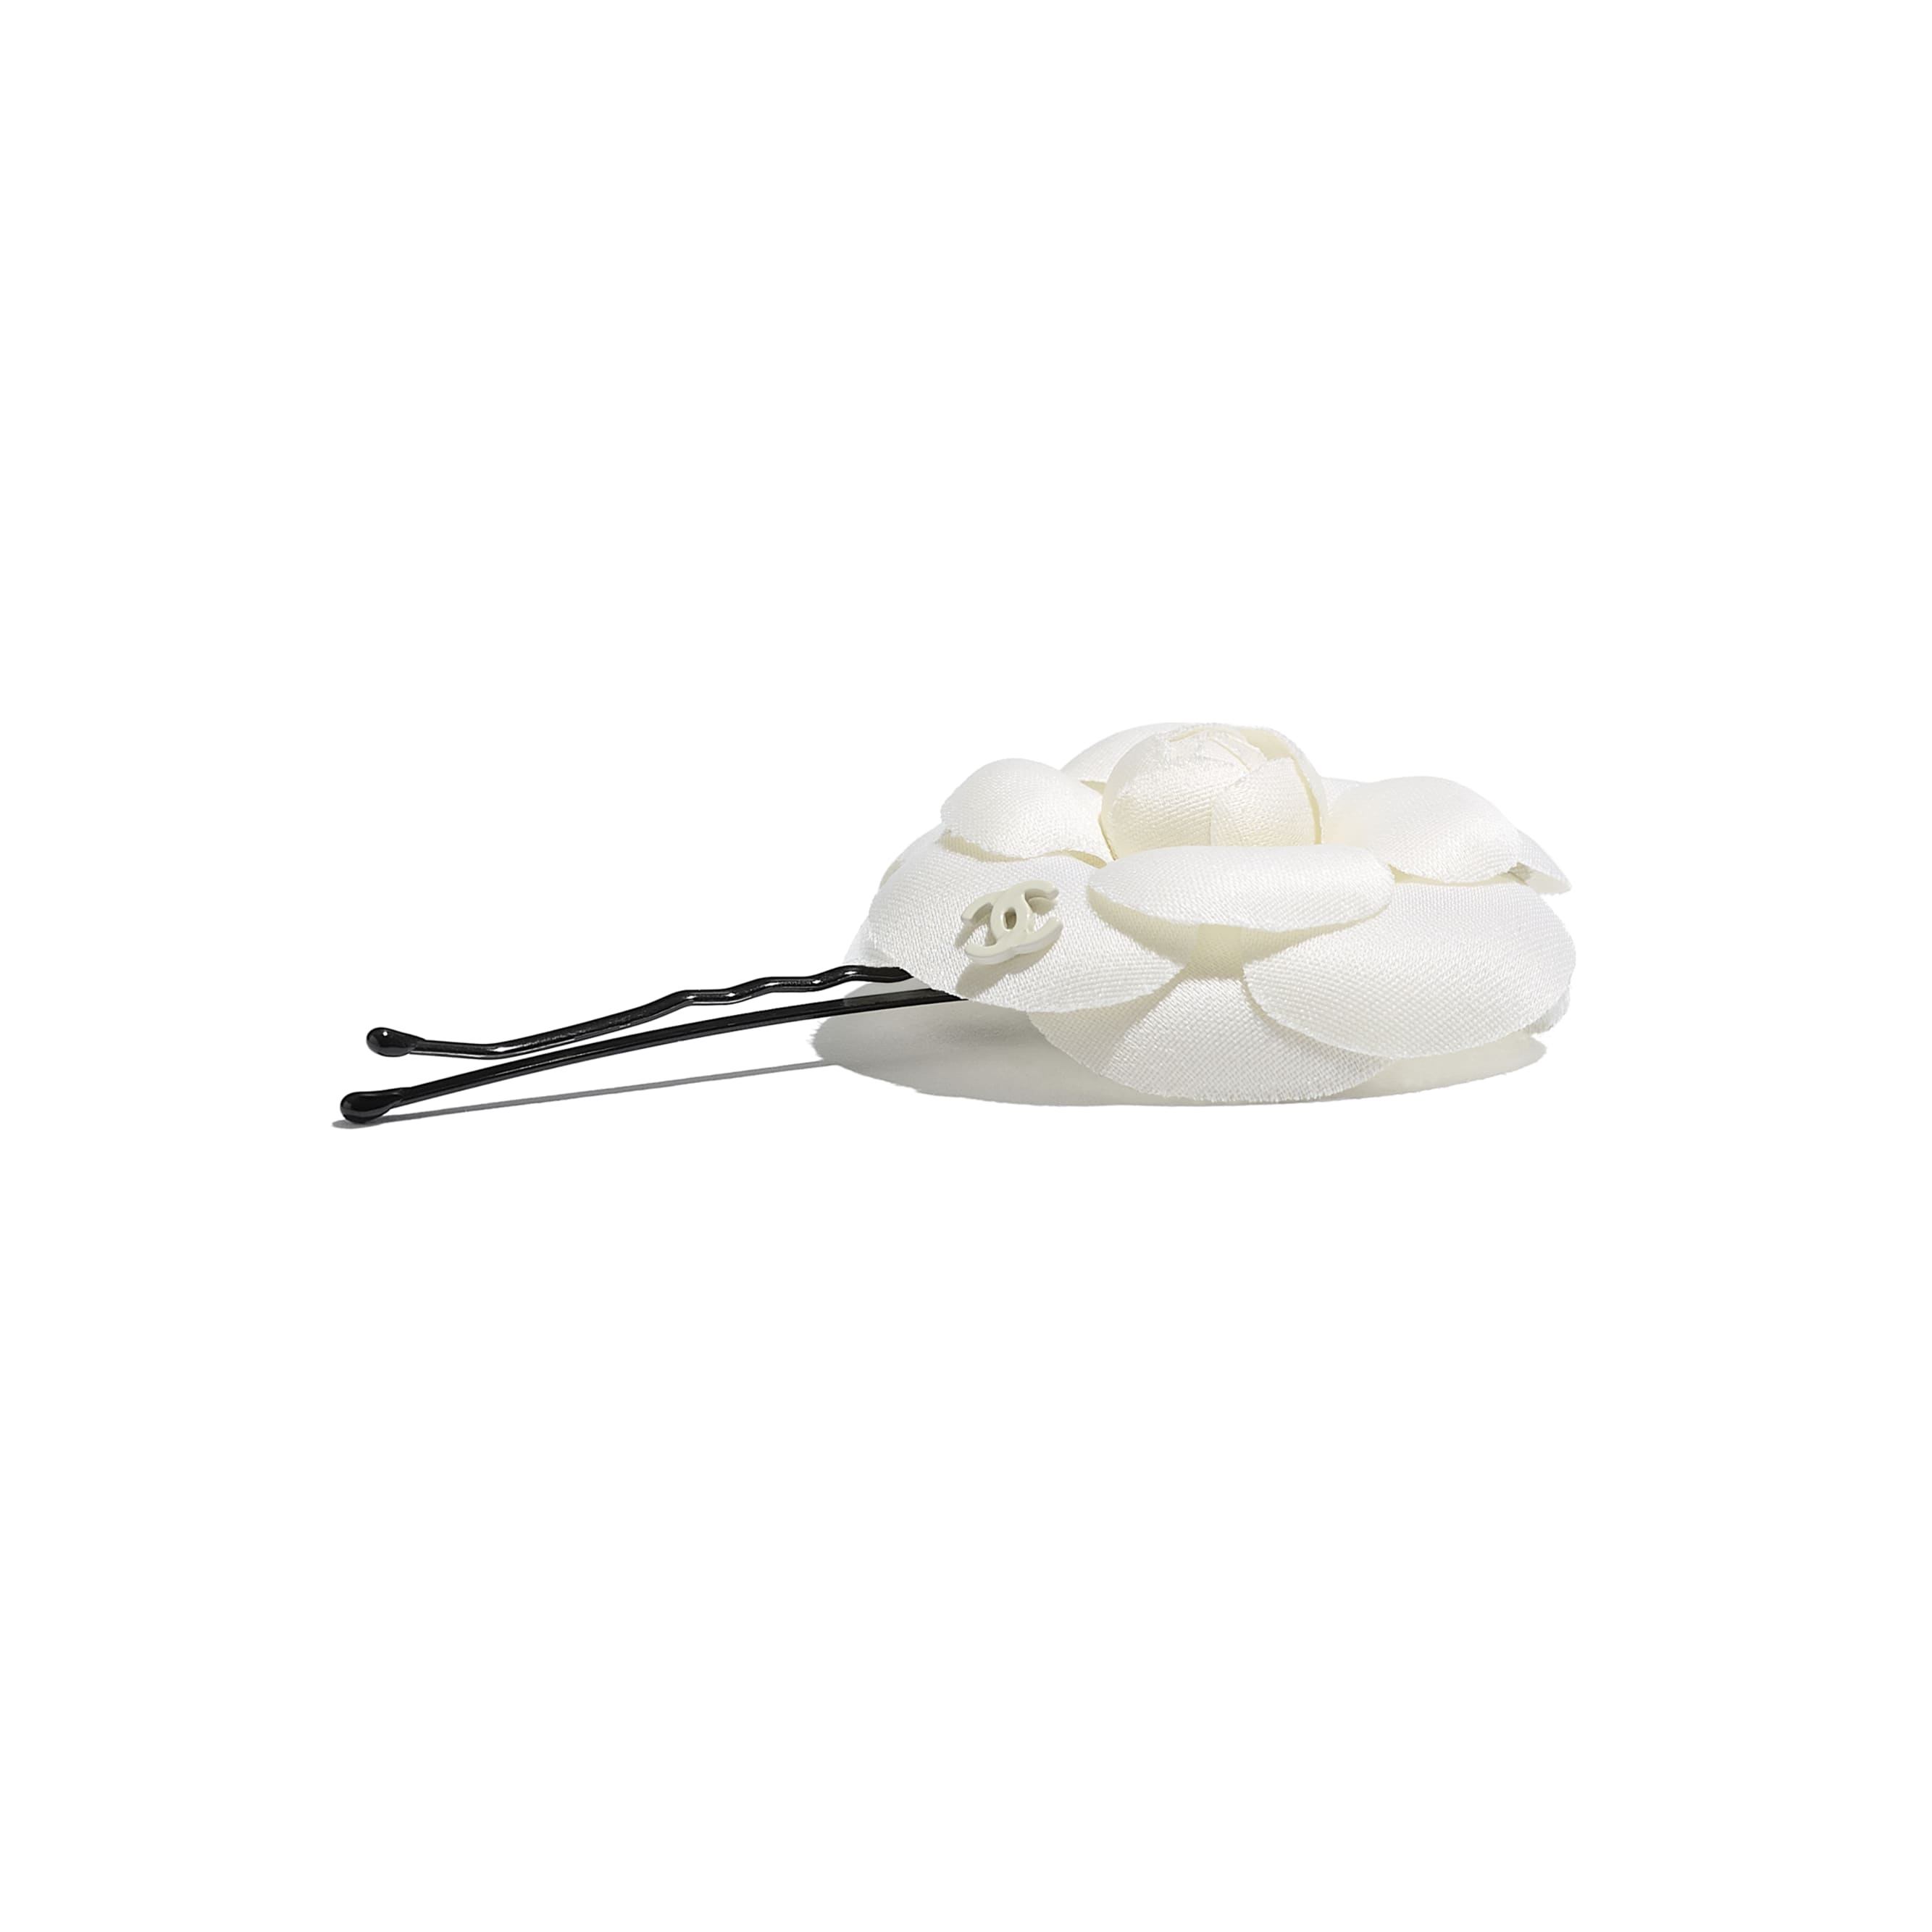 Hair Clip - Ivory - Silk, Cotton, Mixed Fibres & Metal - CHANEL - Alternative view - see standard sized version